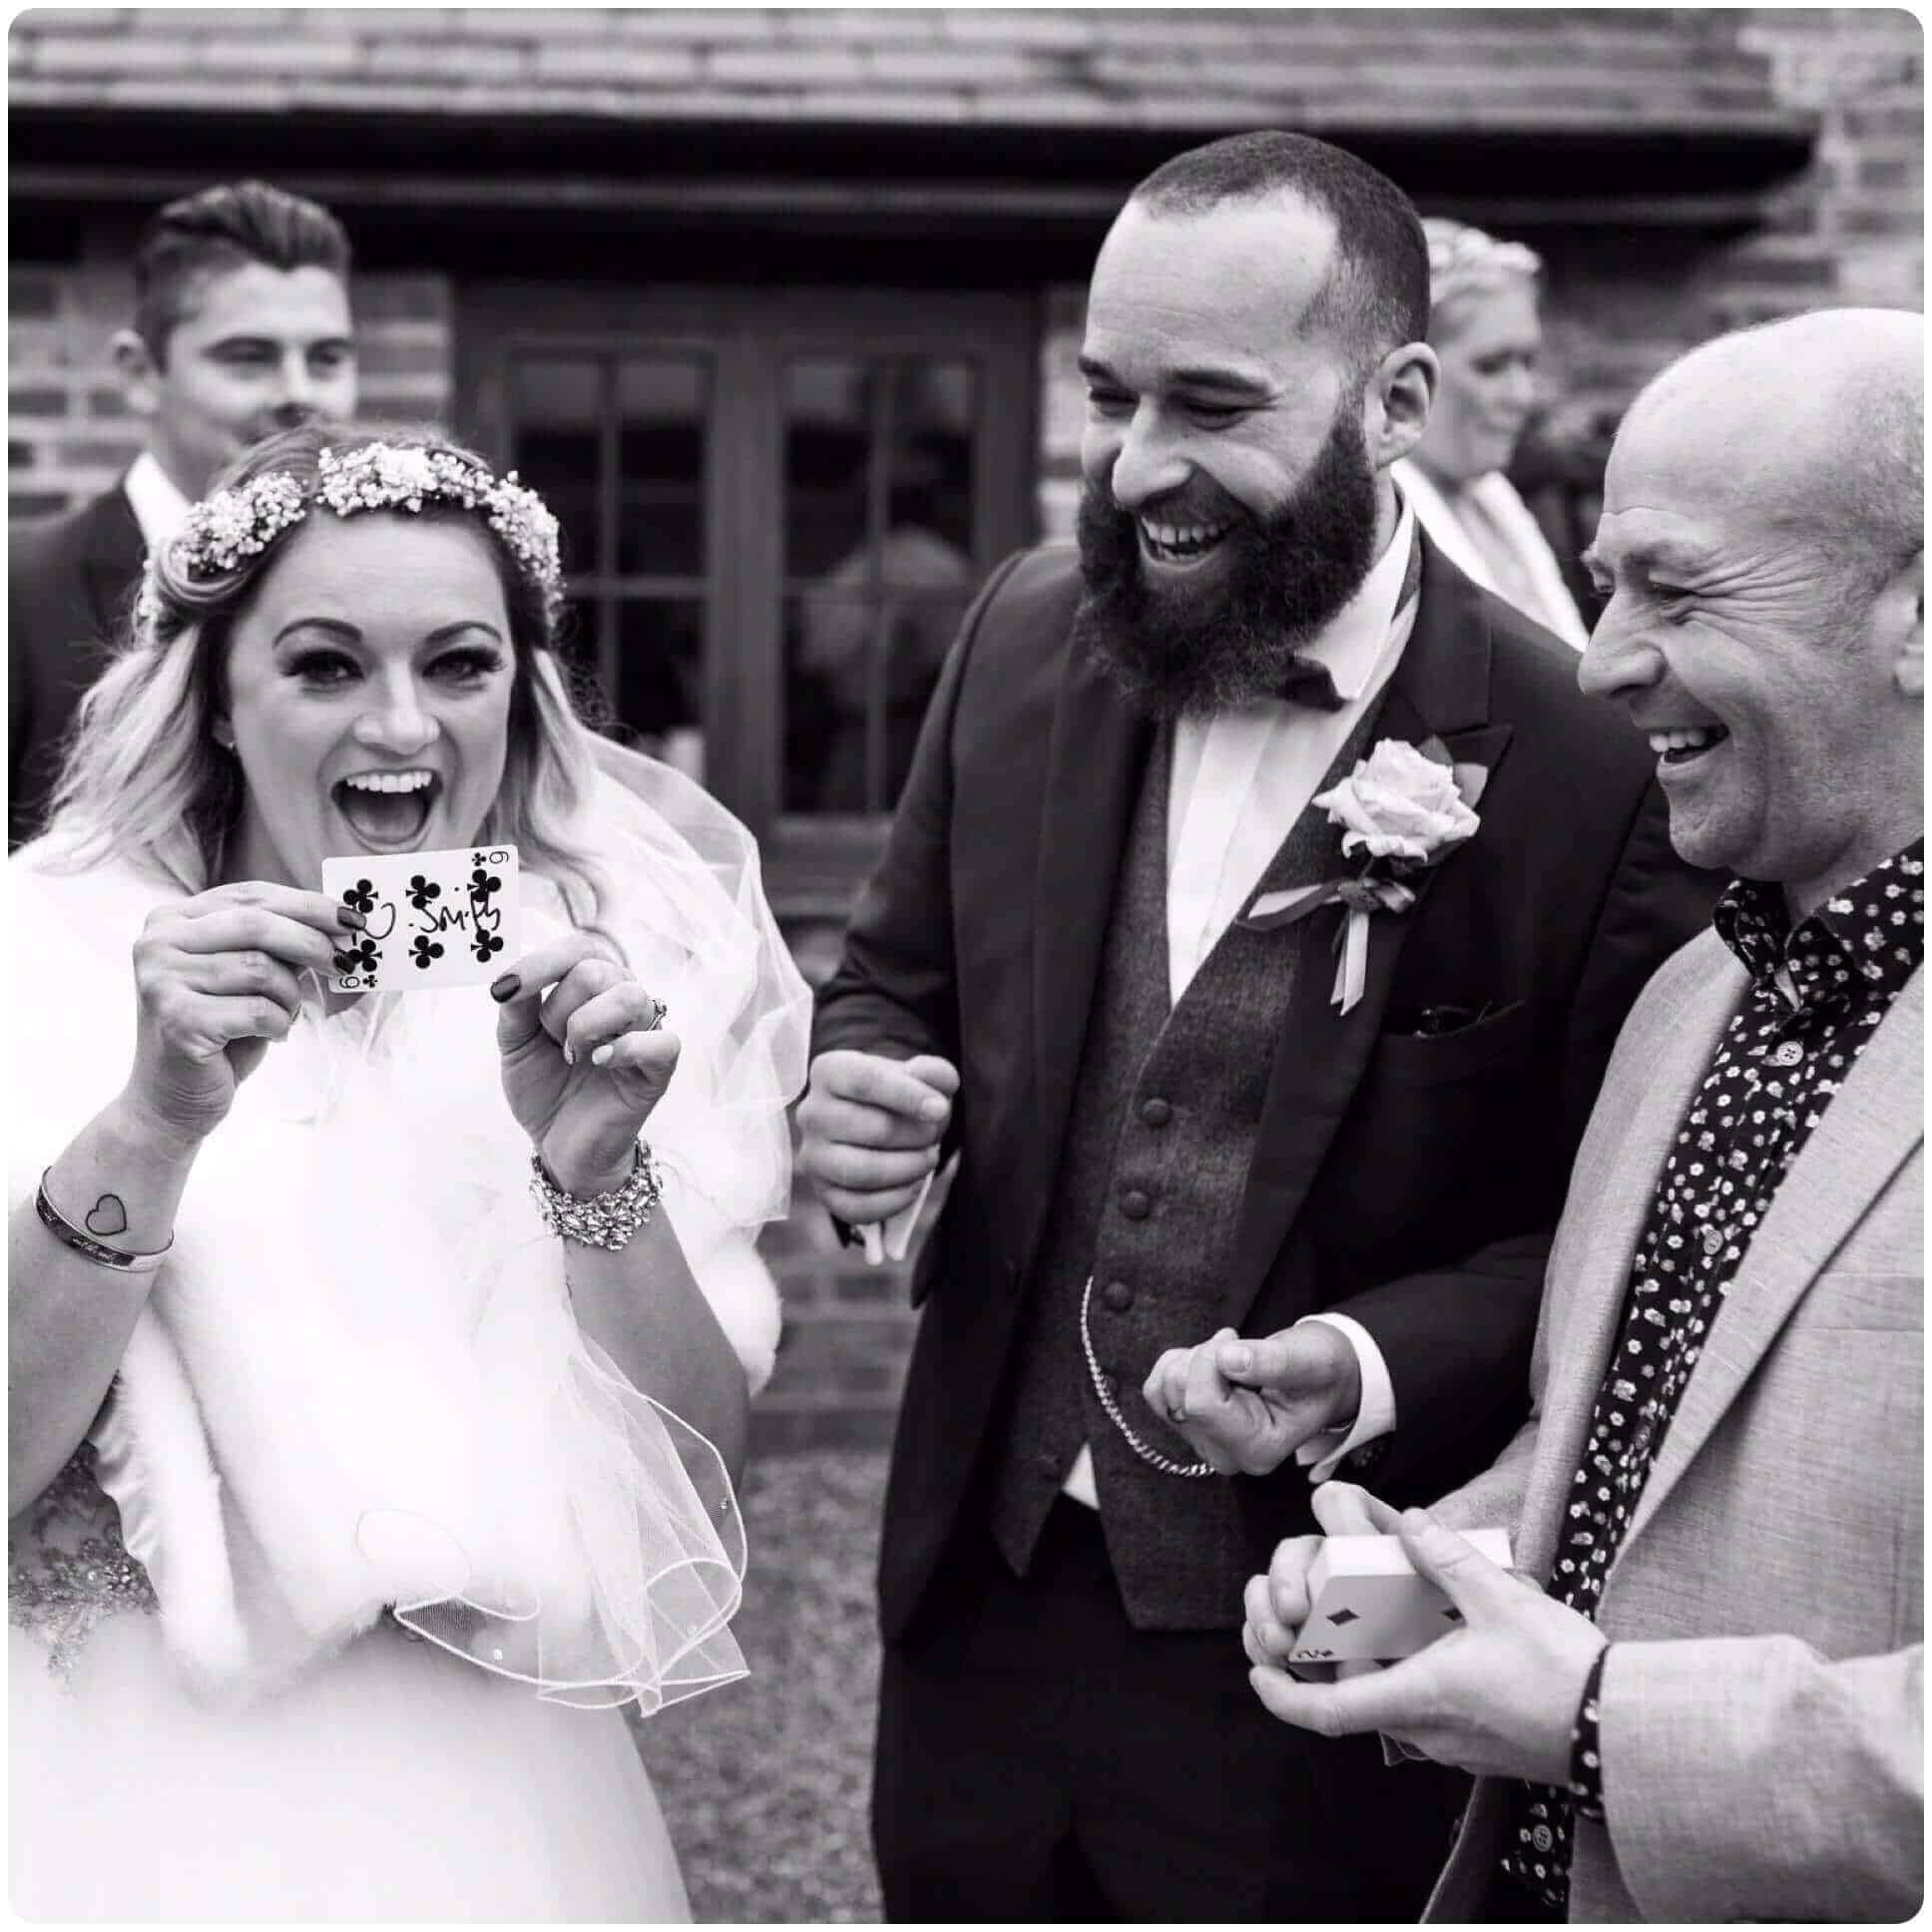 Birmingham magician Will Gray performing a card trick to an amazed bride and groom